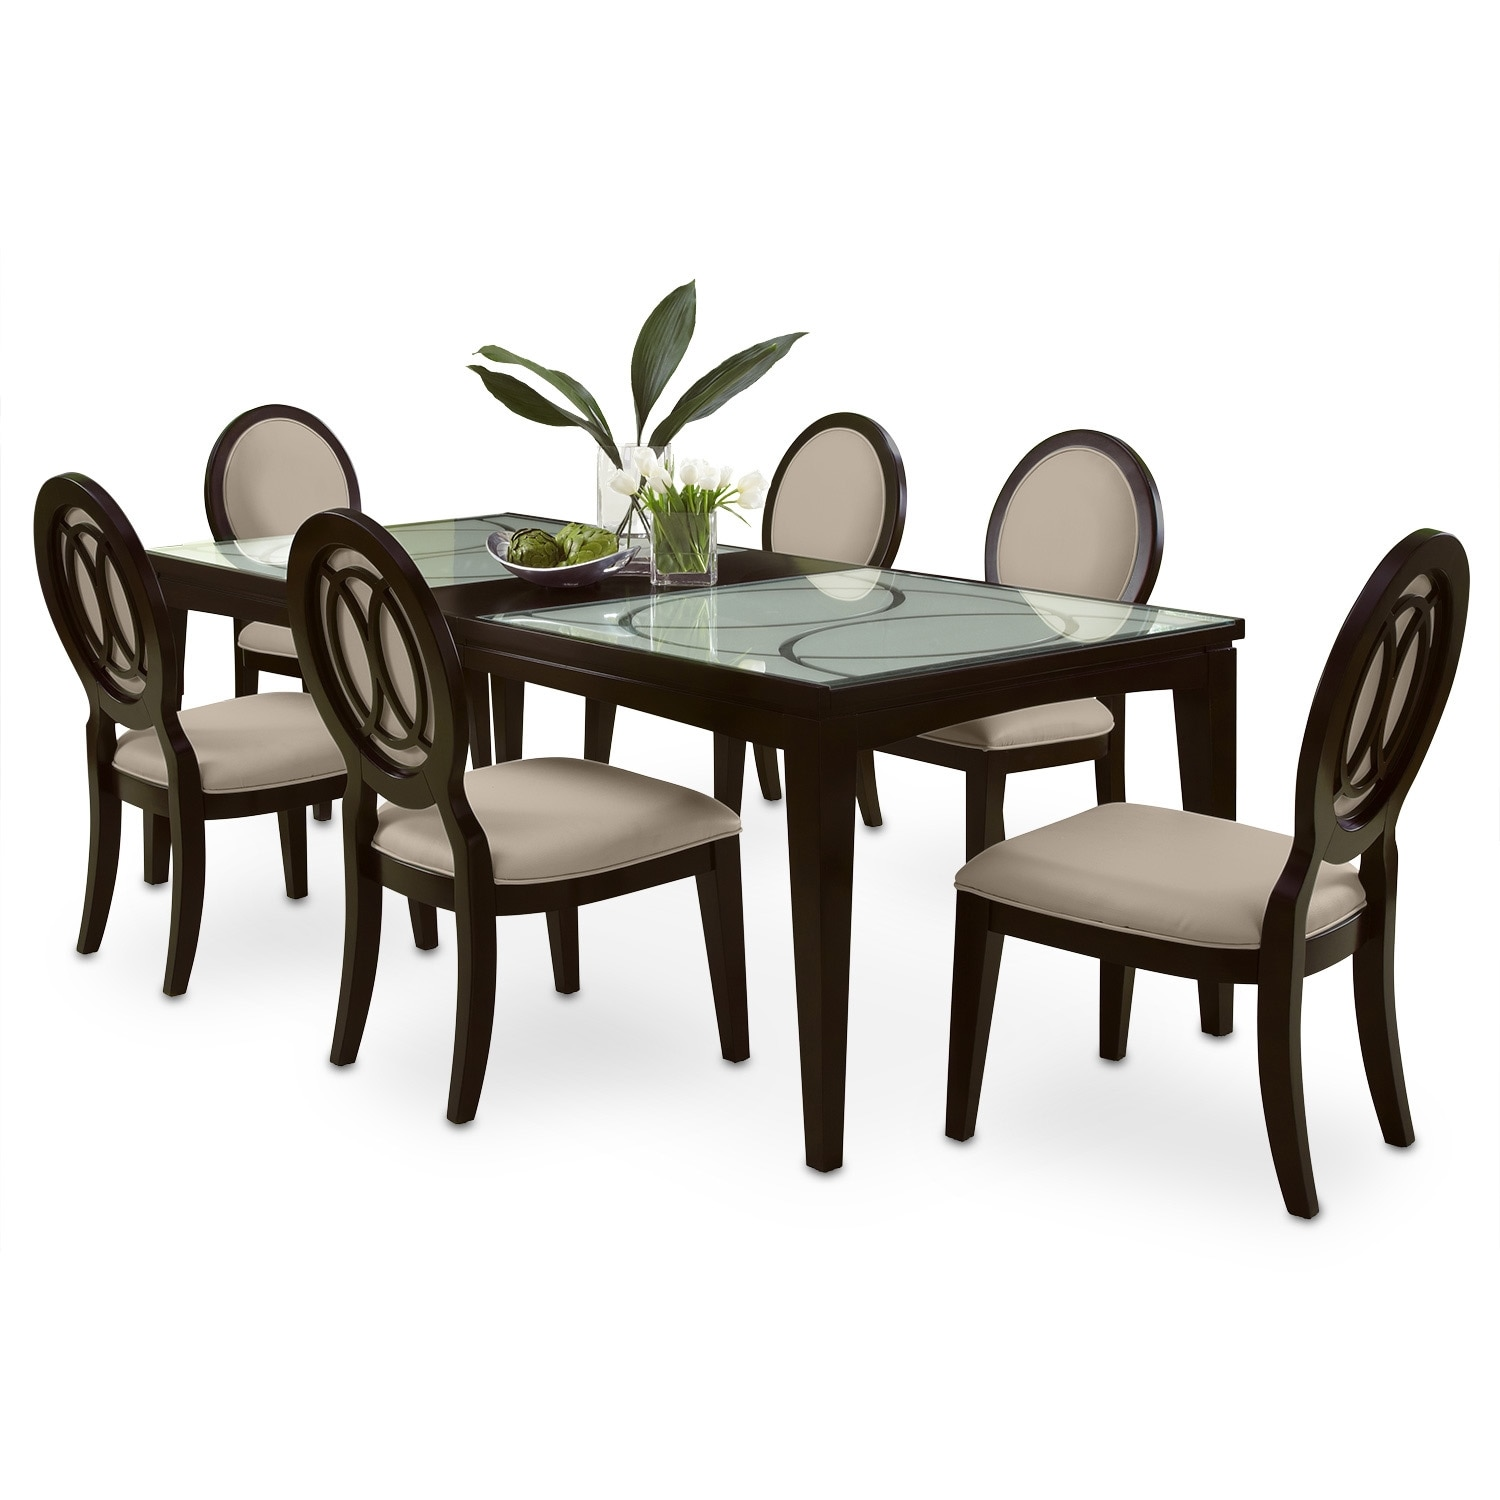 Cosmo table and 6 chairs merlot american signature for Dining room table and 6 chairs